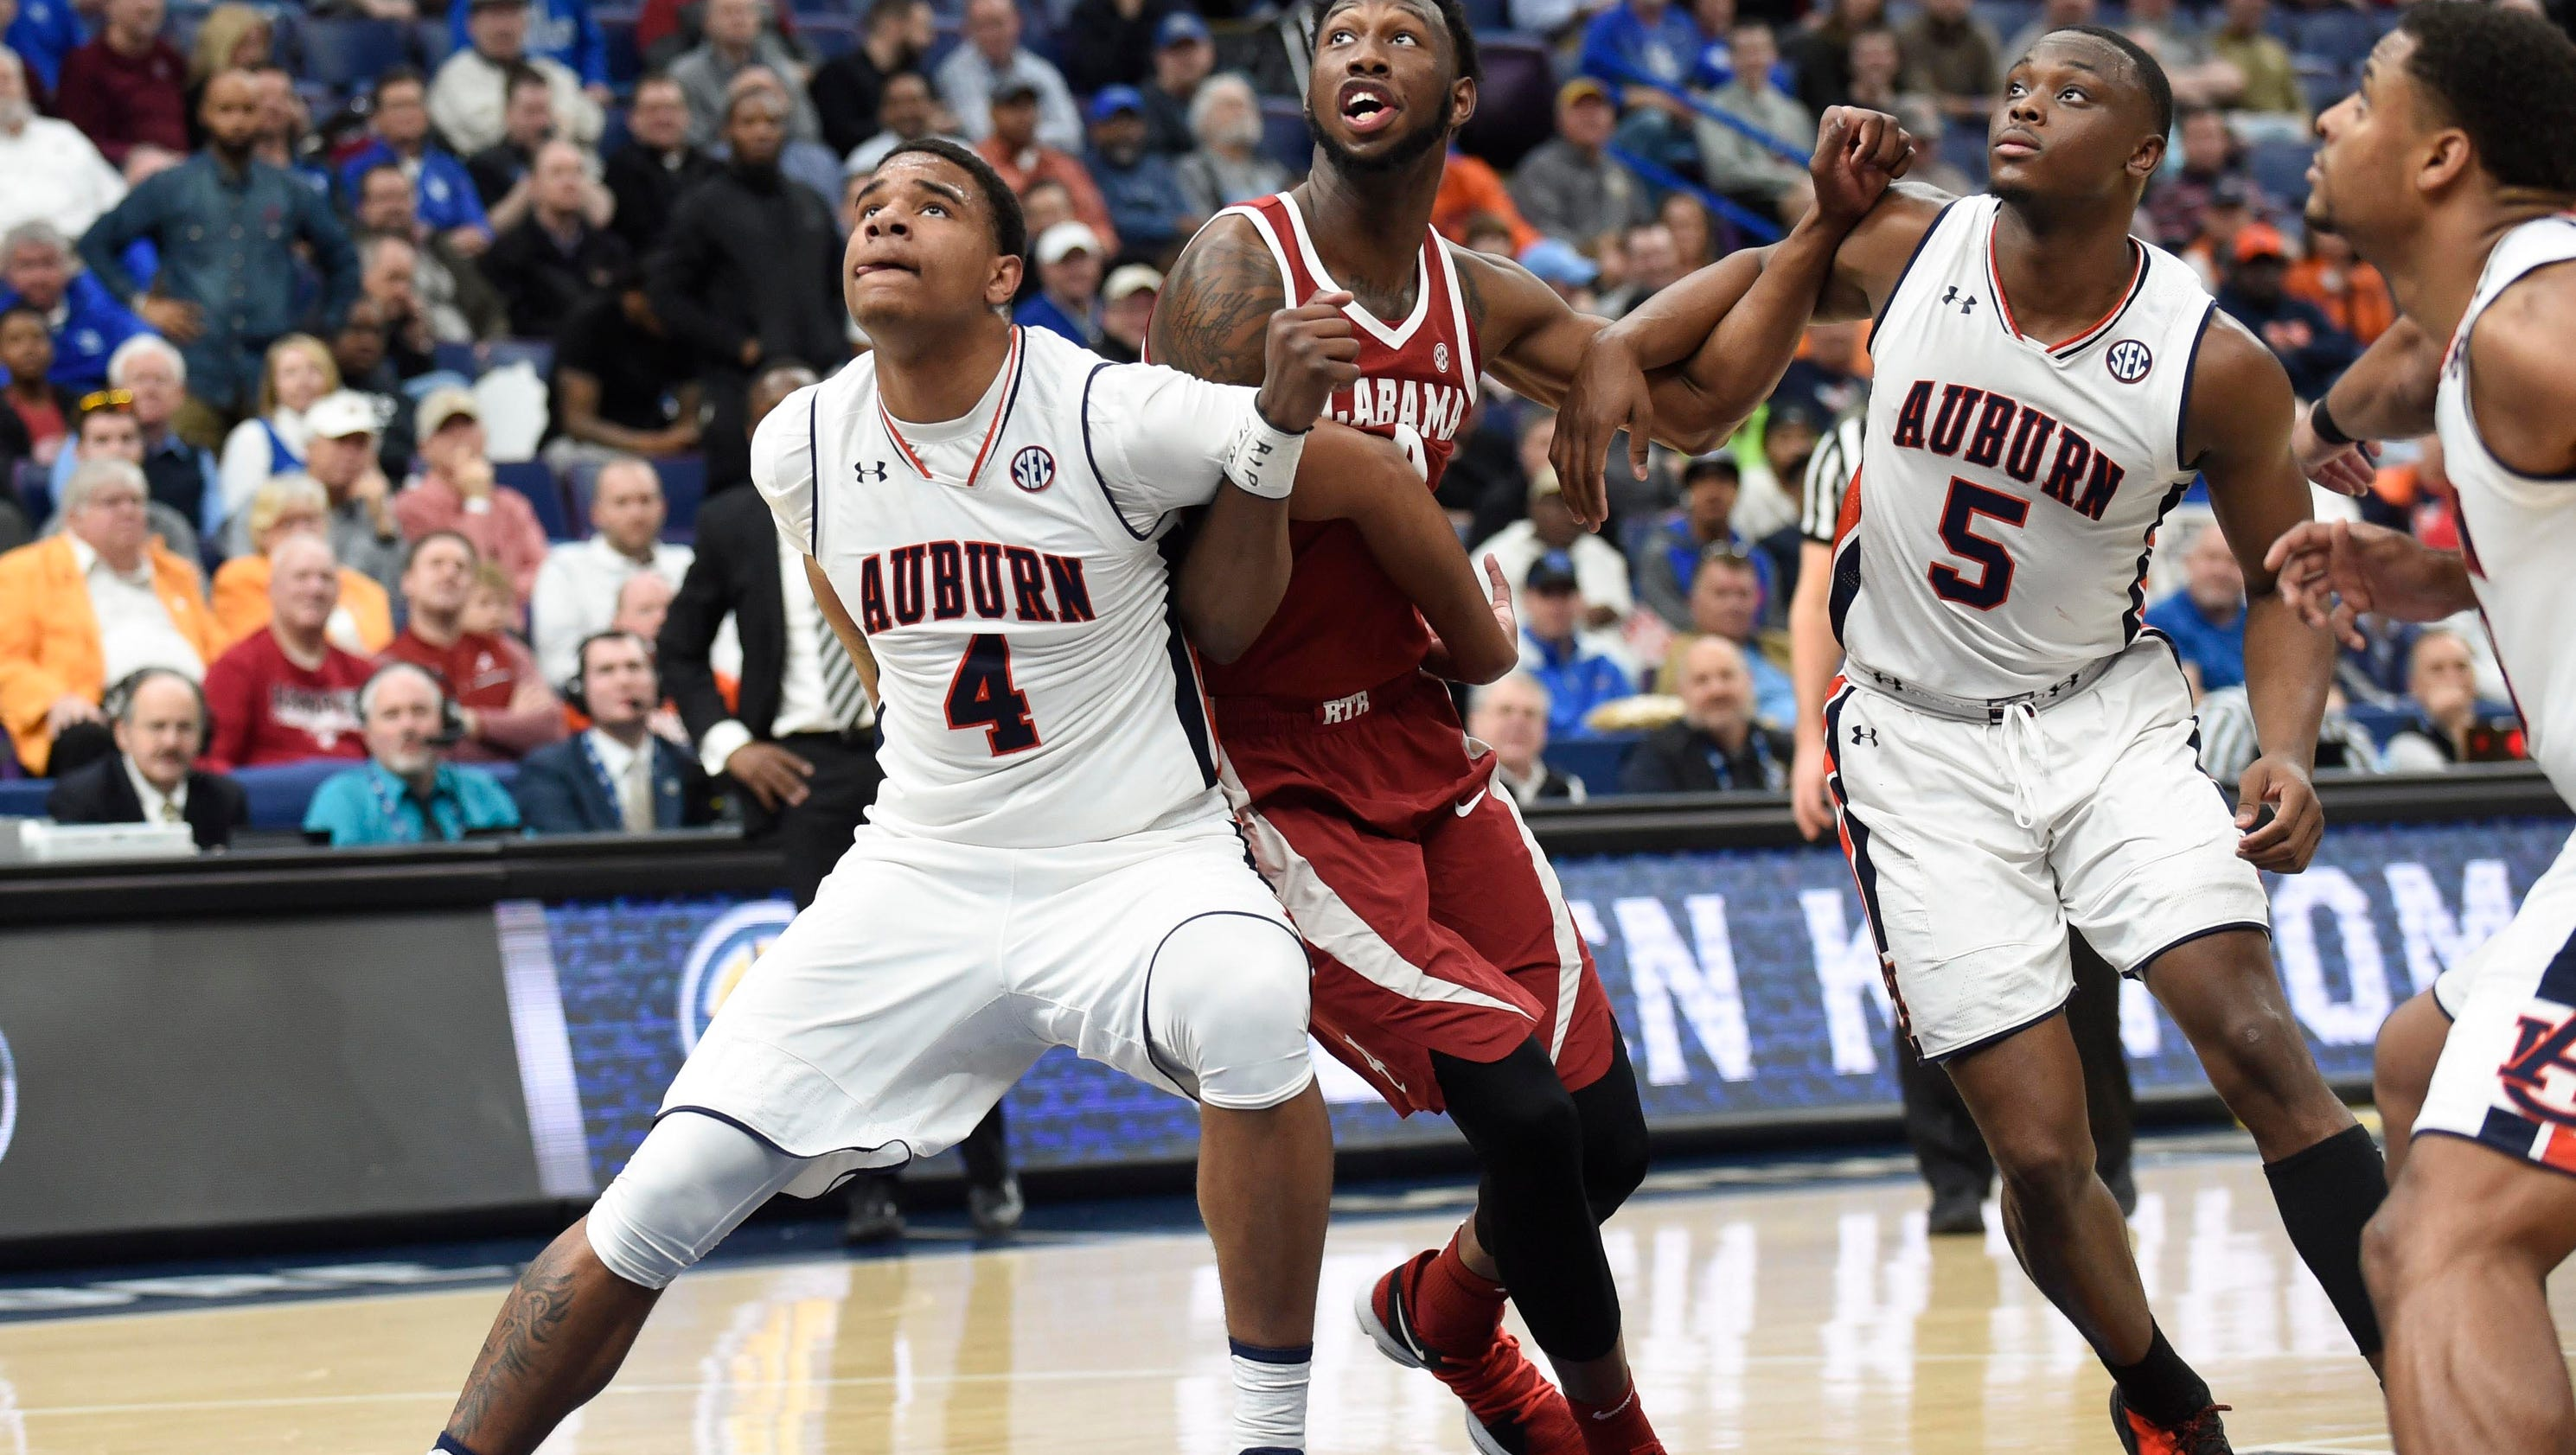 Five teams in NCAA tournament trouble after being ranked ...